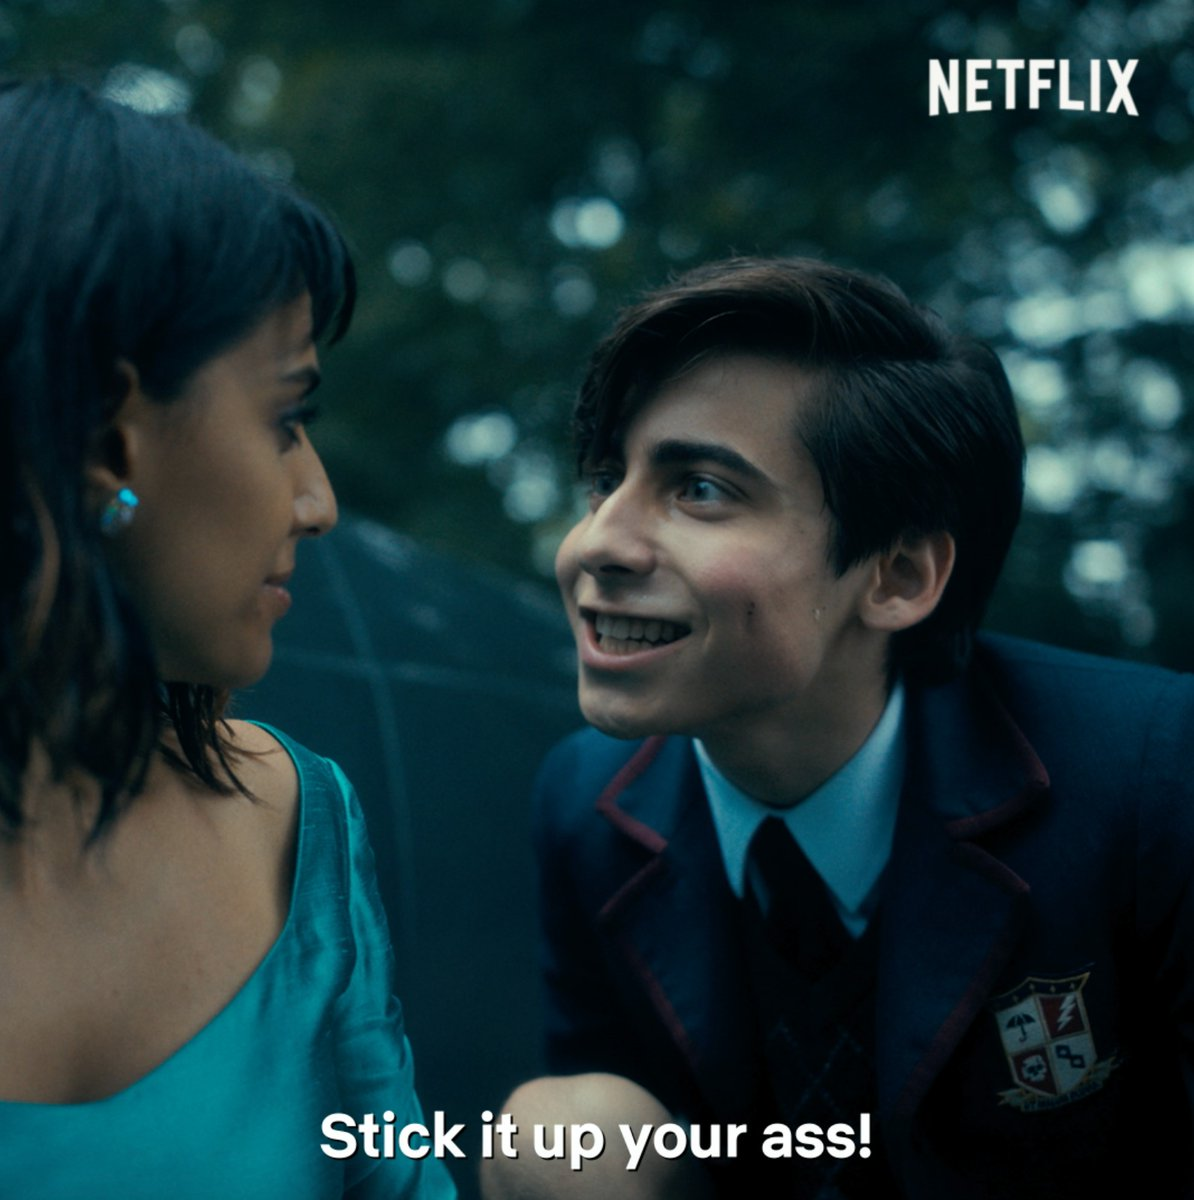 History of Swear Words got me thinking about the history of swear words on Netflix...